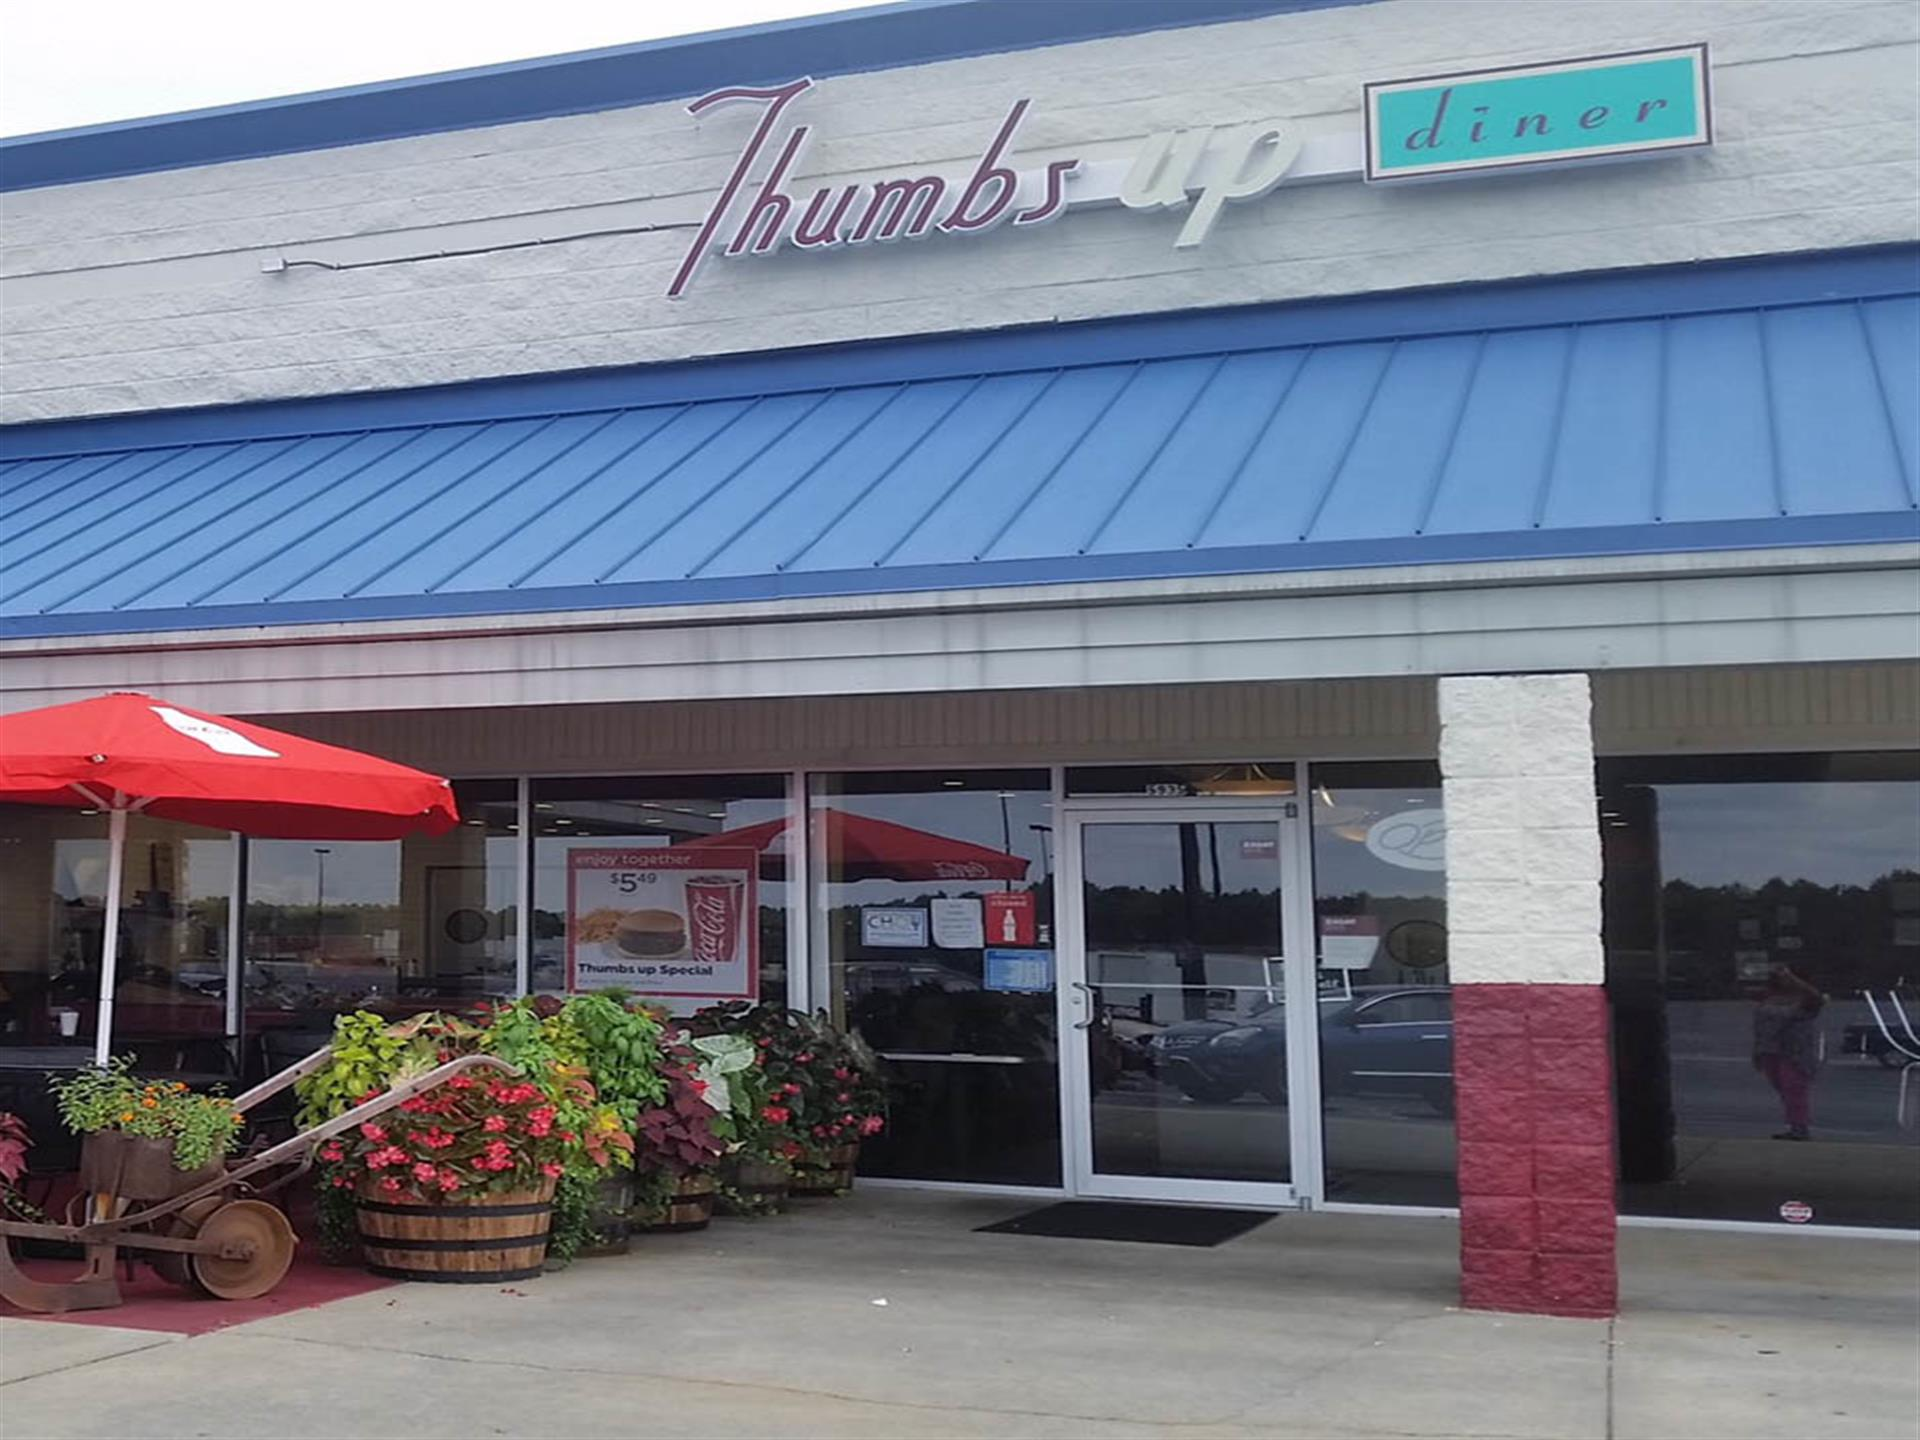 one of the thumbs up diner locations front entrance with an awning and tables setup outdoors